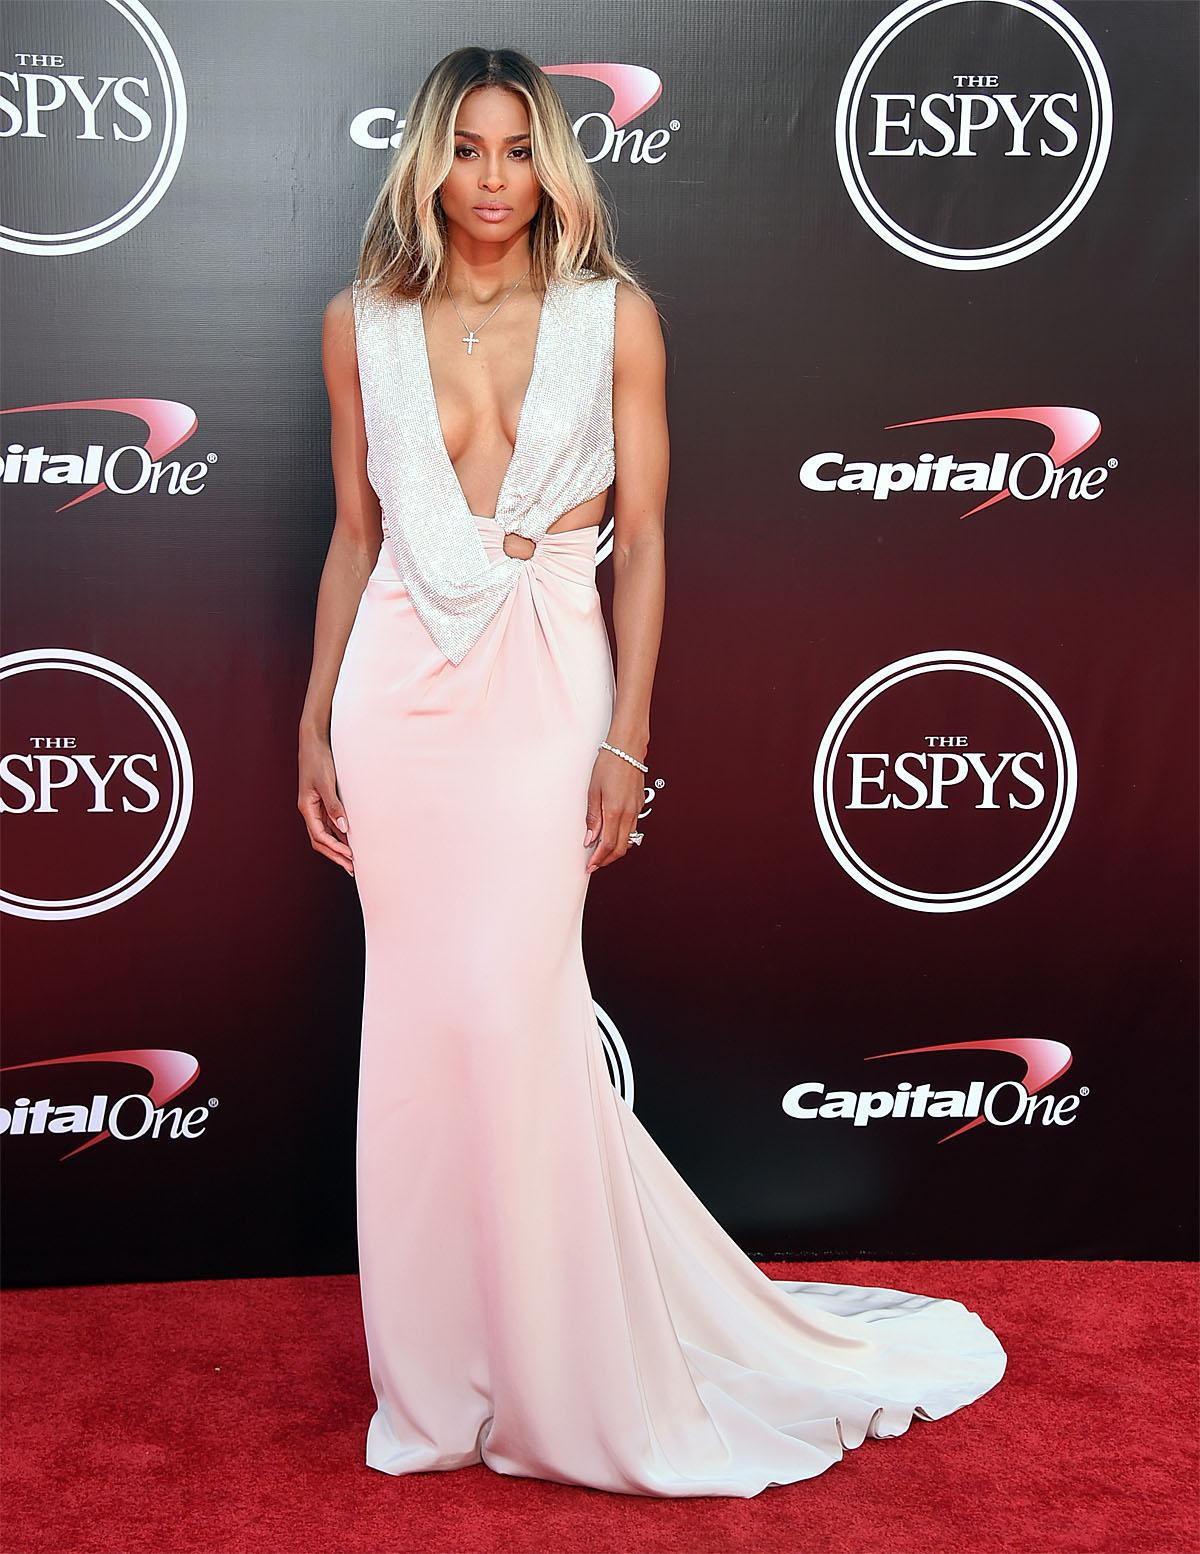 Ciara arrives at the ESPY Awards at the Microsoft Theater on Wednesday, July 13, 2016, in Los Angeles. (Photo by Jordan Strauss/Invision/AP)